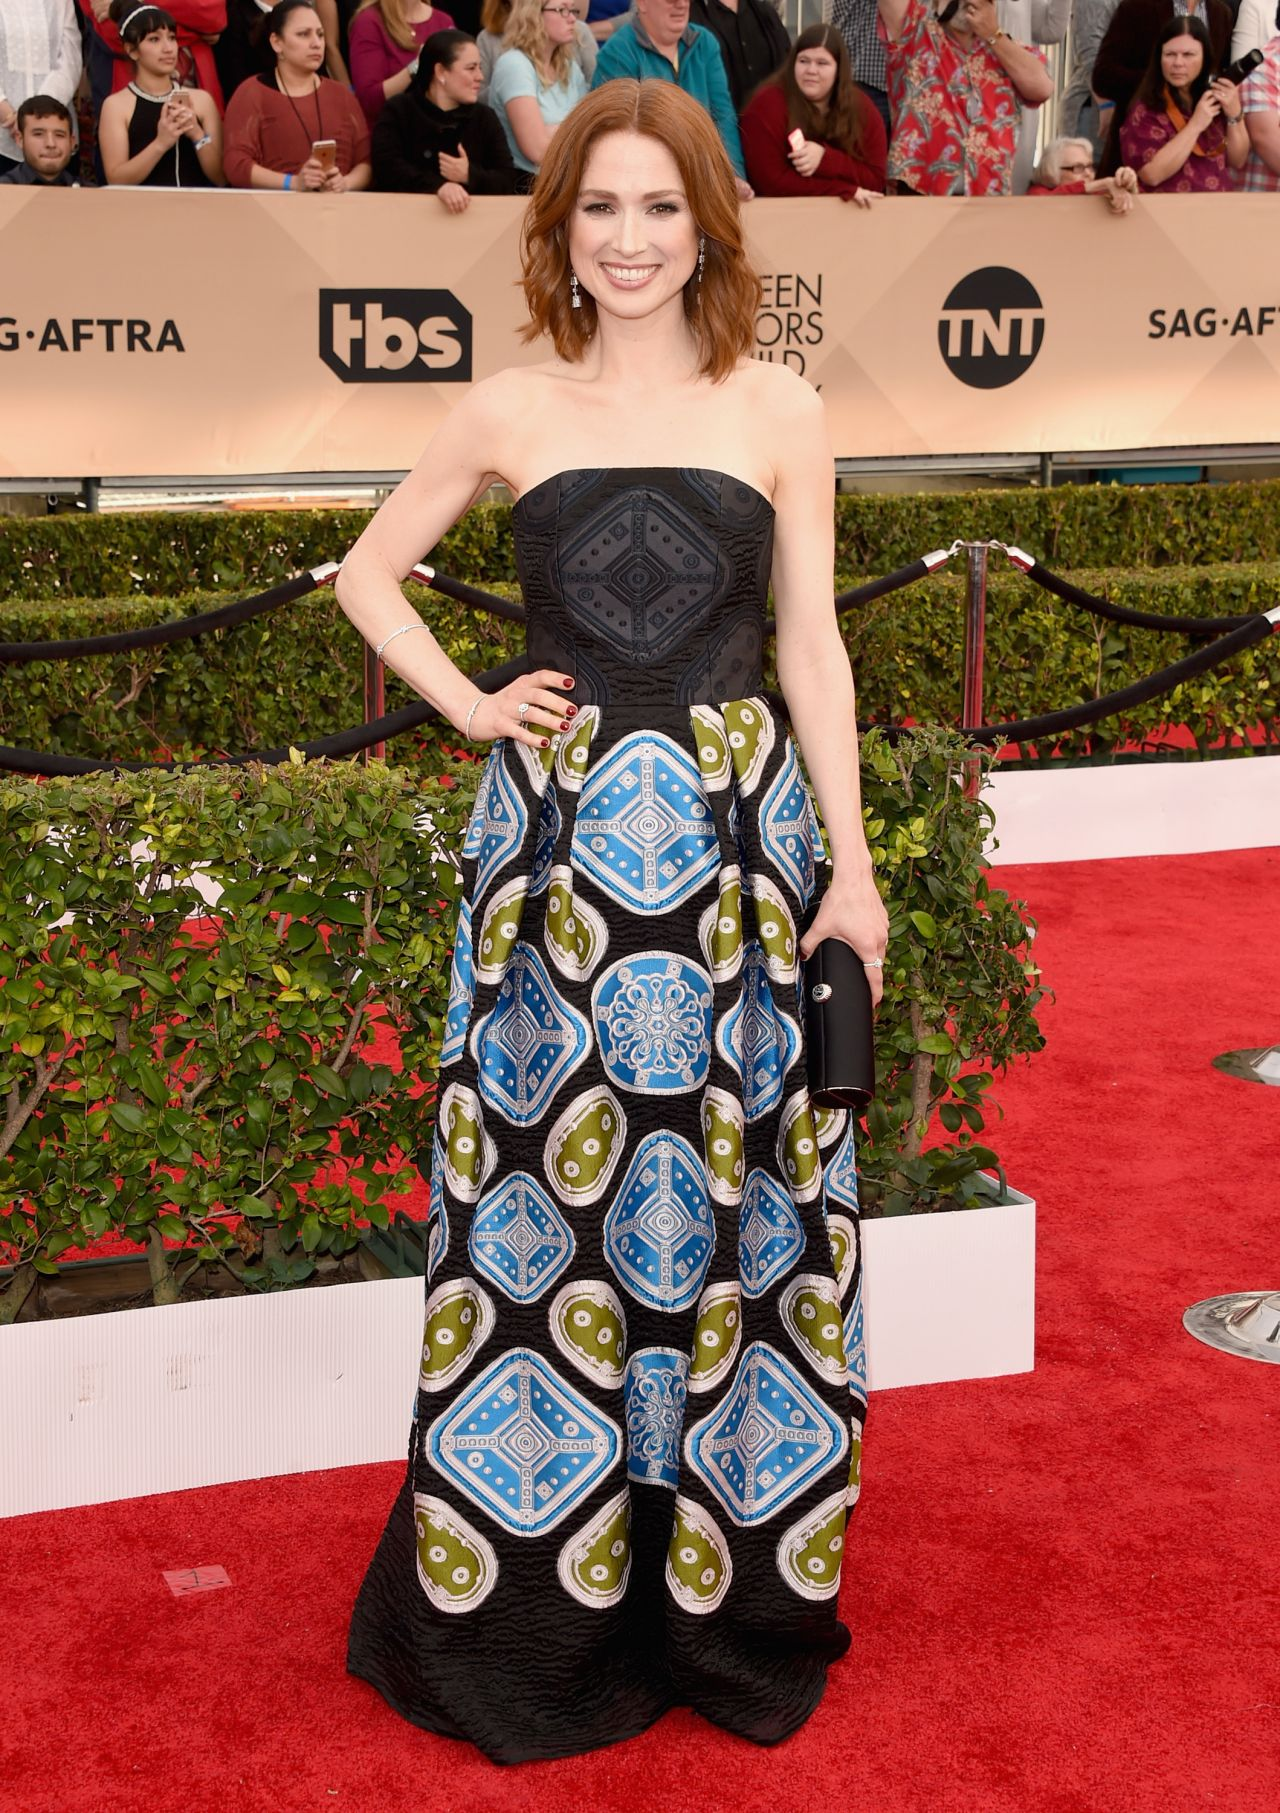 ellie-kemper-sag-awards-2016-at-shrine-auditorium-in-los-angeles-4